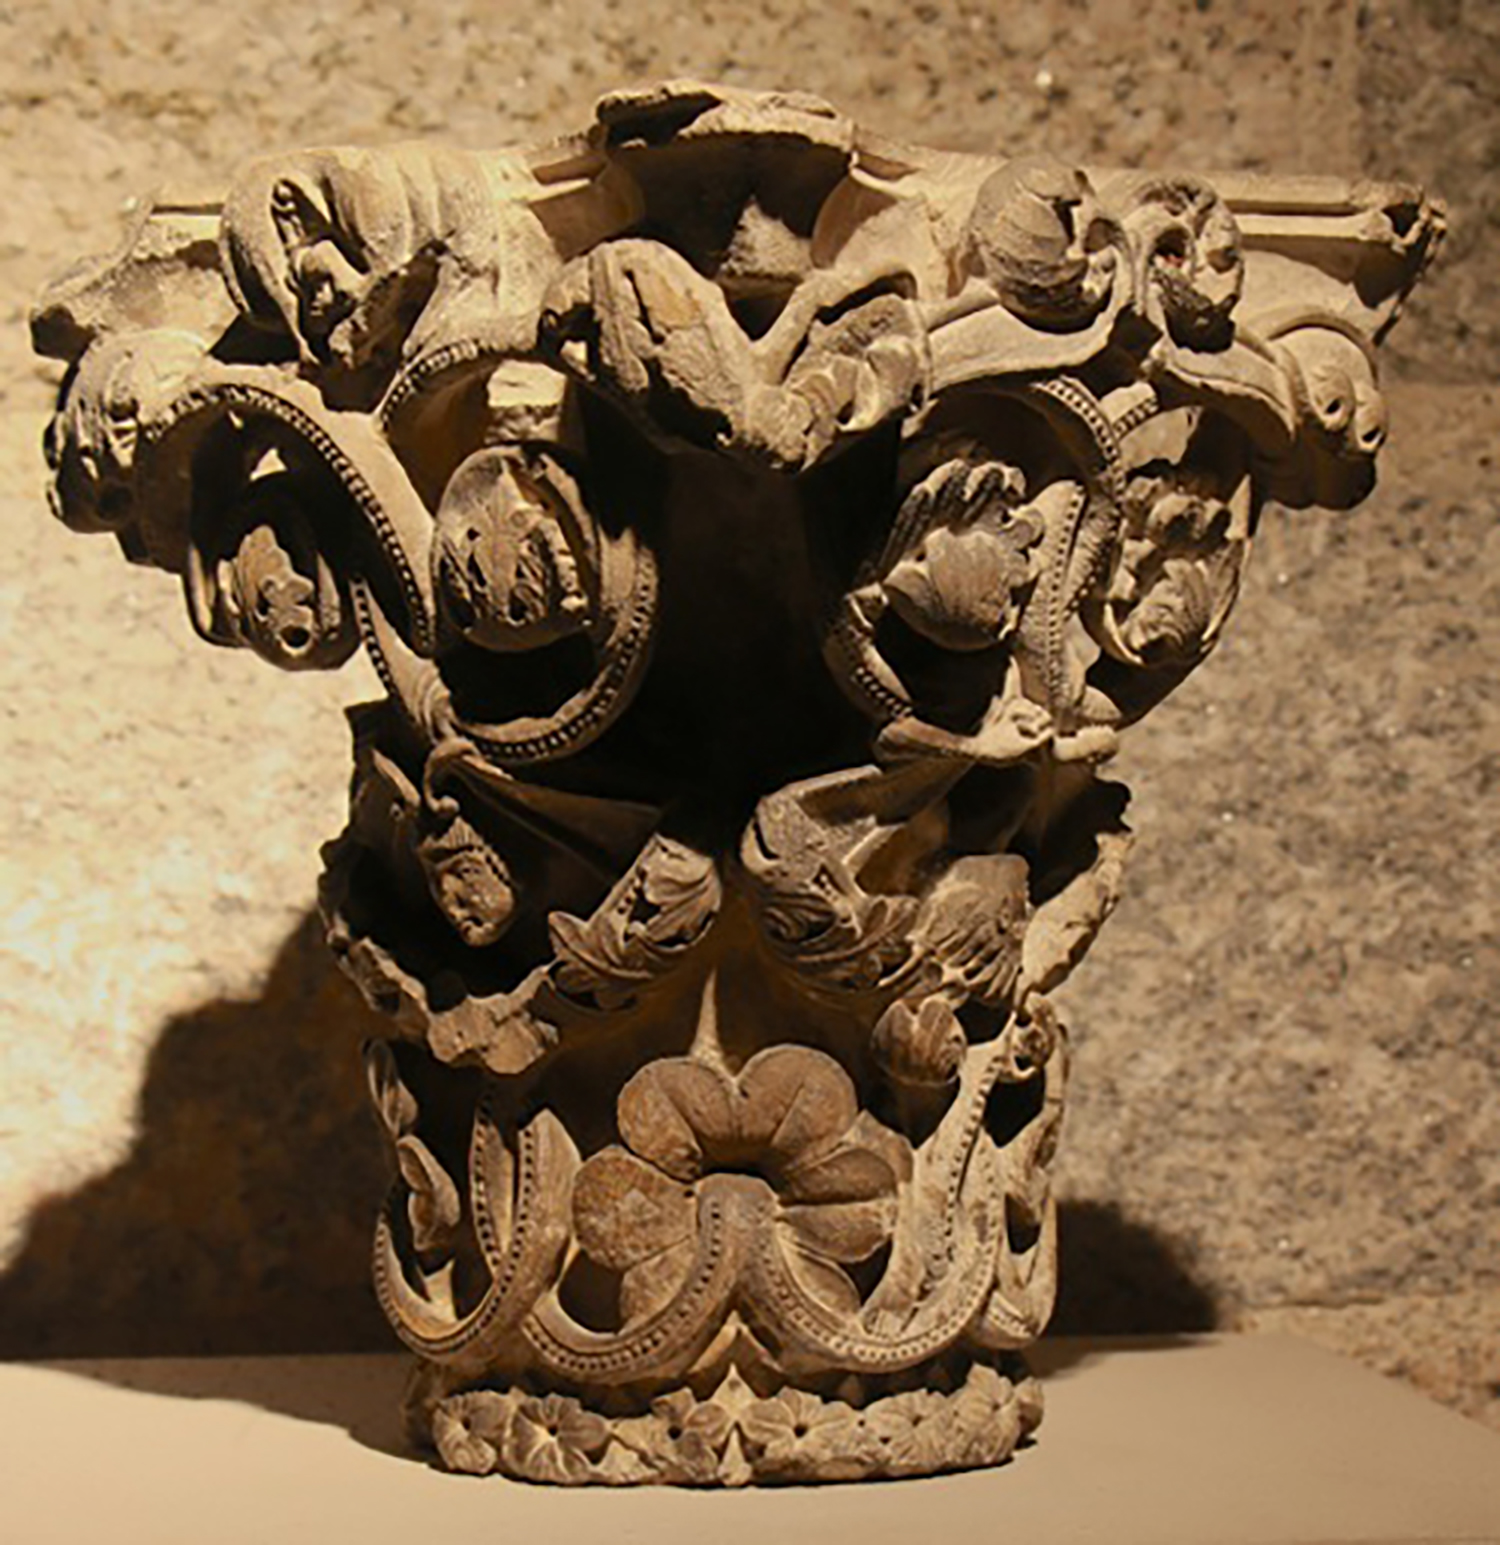 Figure 1: Romanesque capital from the monastery of Saint-Guilhem-le-Désert.